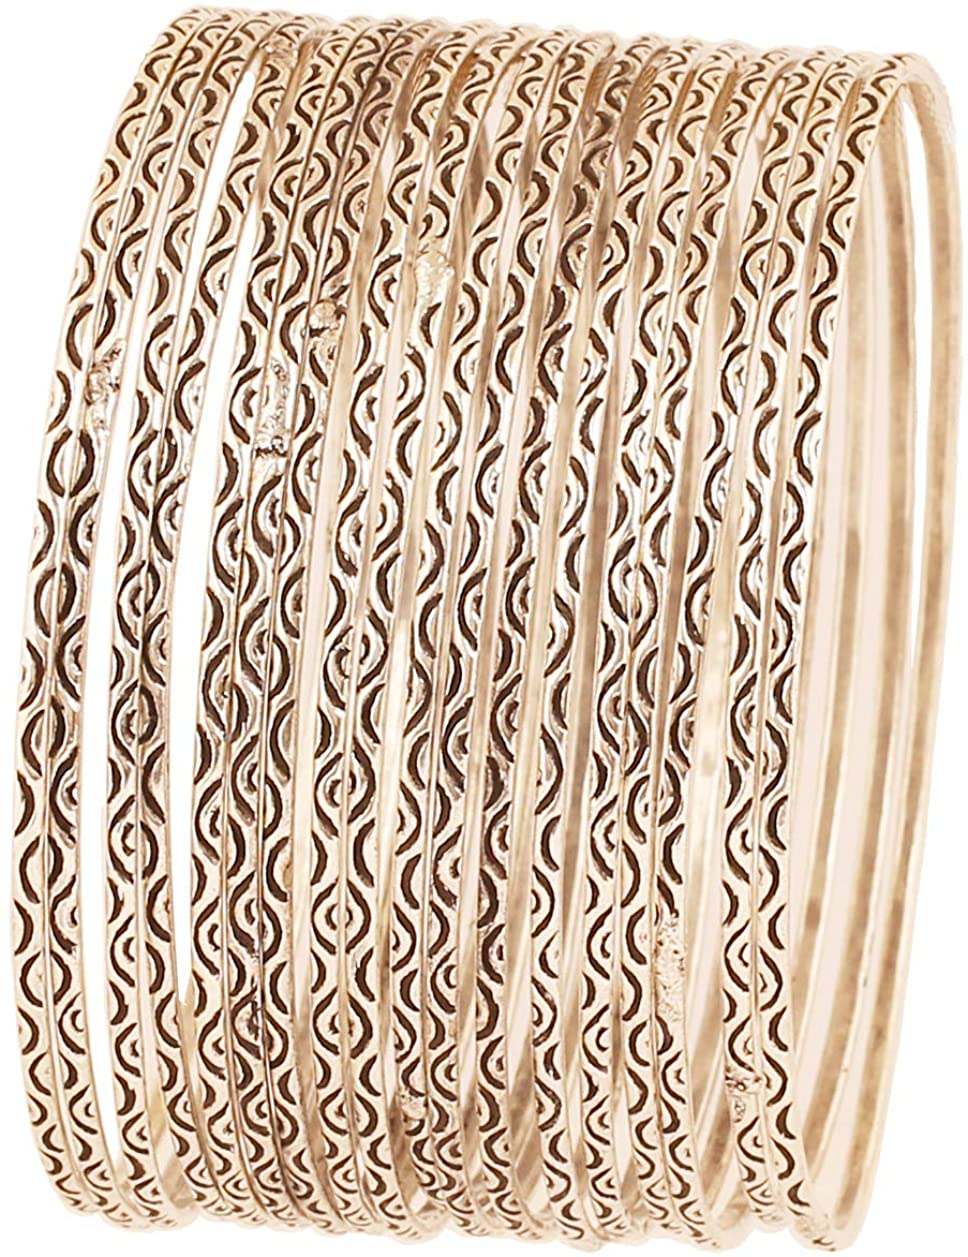 Touchstone New Indian Bollywood Artistically Handcrafted Mesmerizing Charming Assorted Lovable Patterns Designer Jewelry Bracelets Bangle in Gold Copper and Silver Tones for Women.